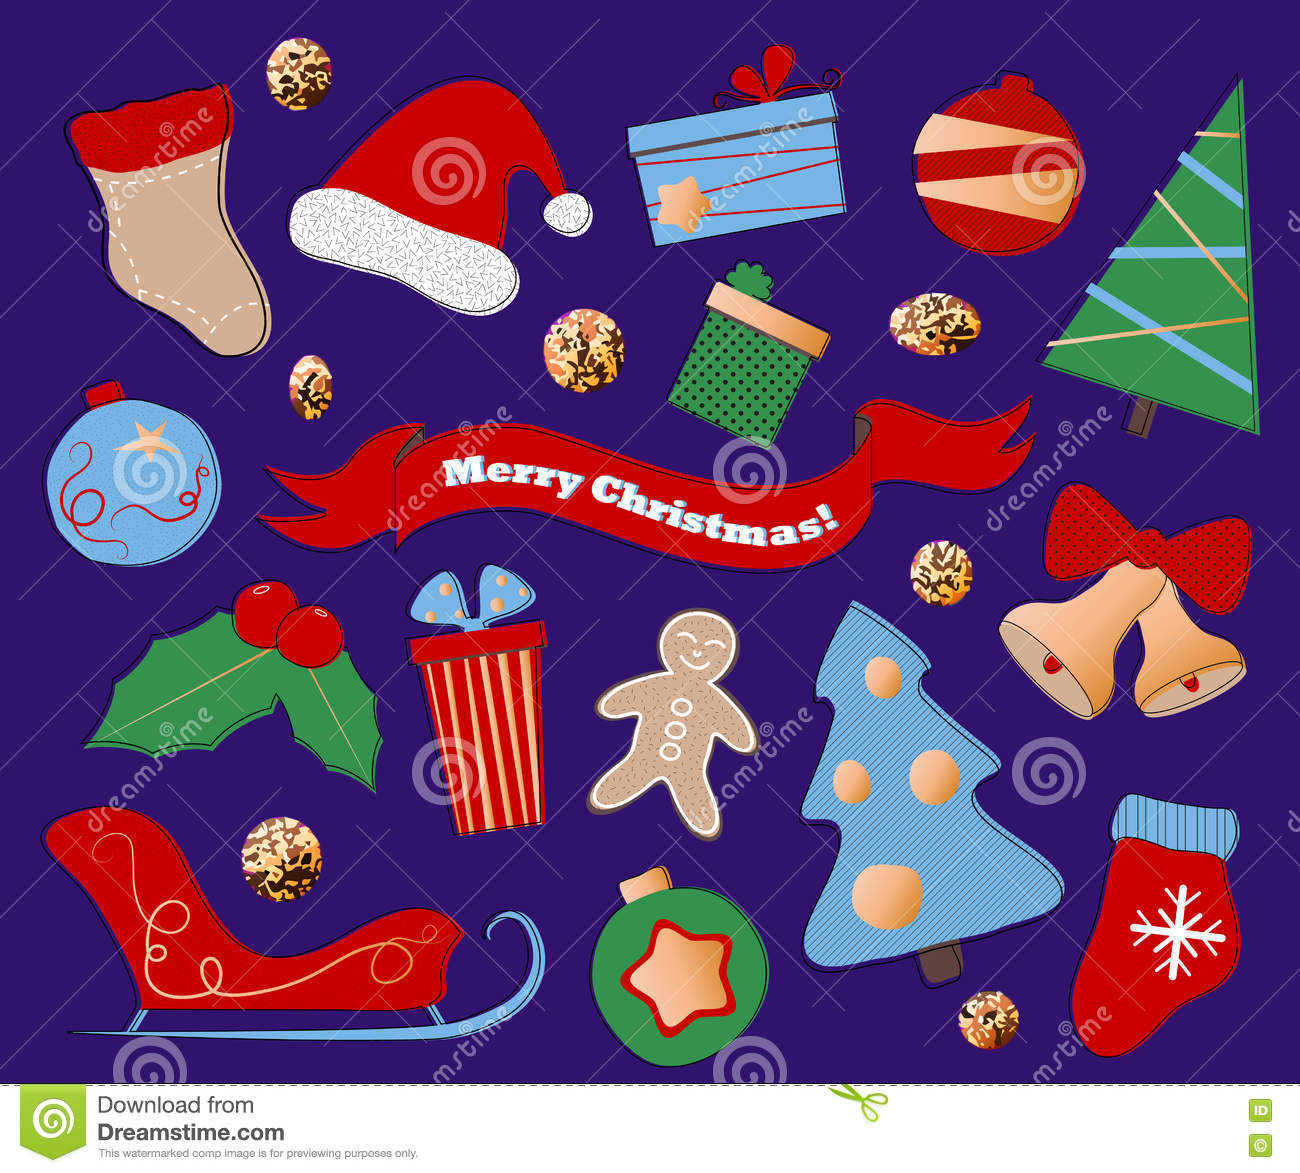 winter holidays clipart on purple background christmas or new year icons in flat style